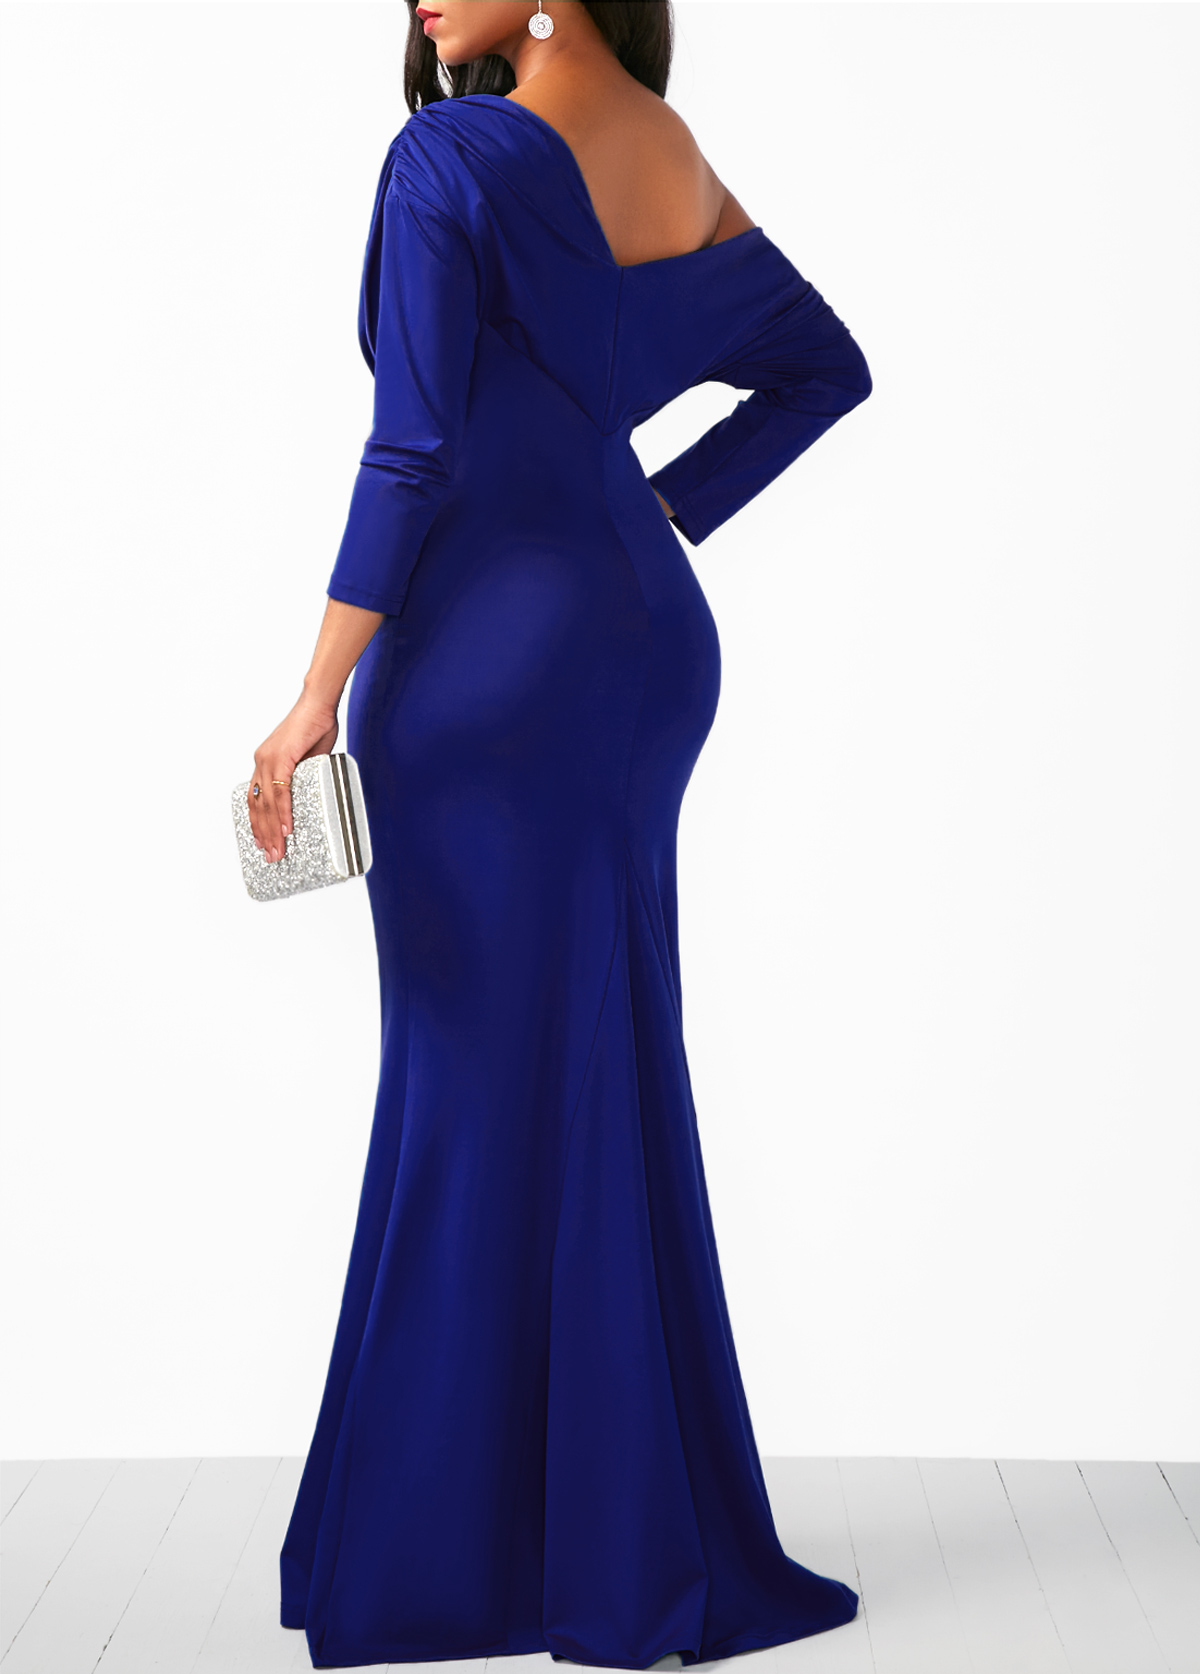 Skew Neck Draped Long Sleeve Mermaid Dress